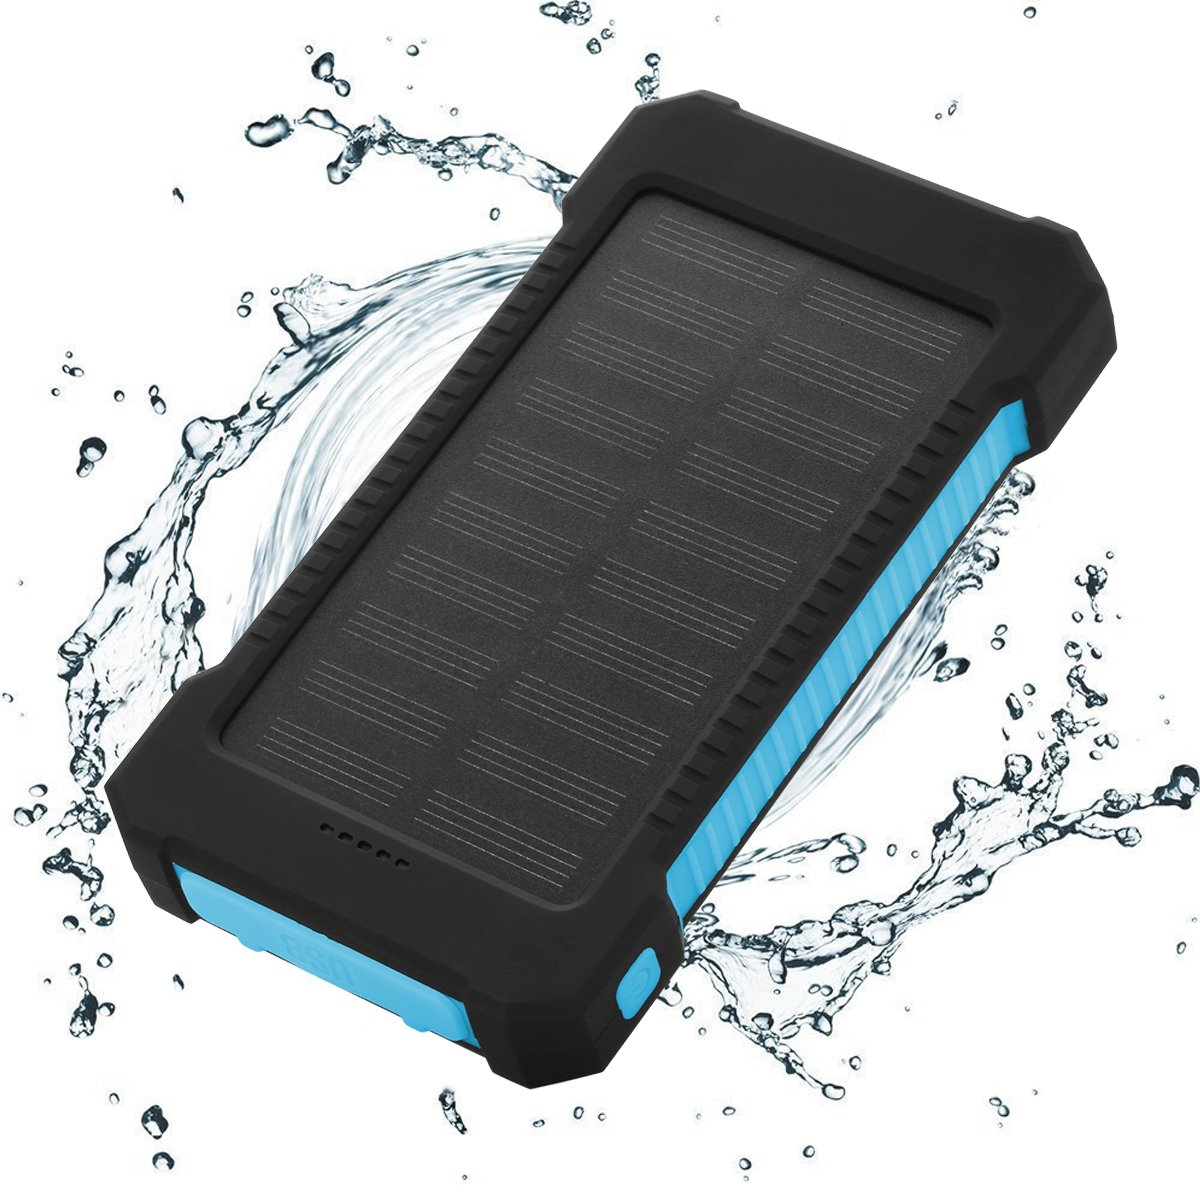 Solar Charger Power Bank 10,000mAh - FLOUREON Portable Phone Solar Charger Dual USB 1.0A/2.1A Max IP67 Waterproof LED SOS Flashlight External Battery for iPhone, iPad, Samsung Galaxy and Android Phone by floureon